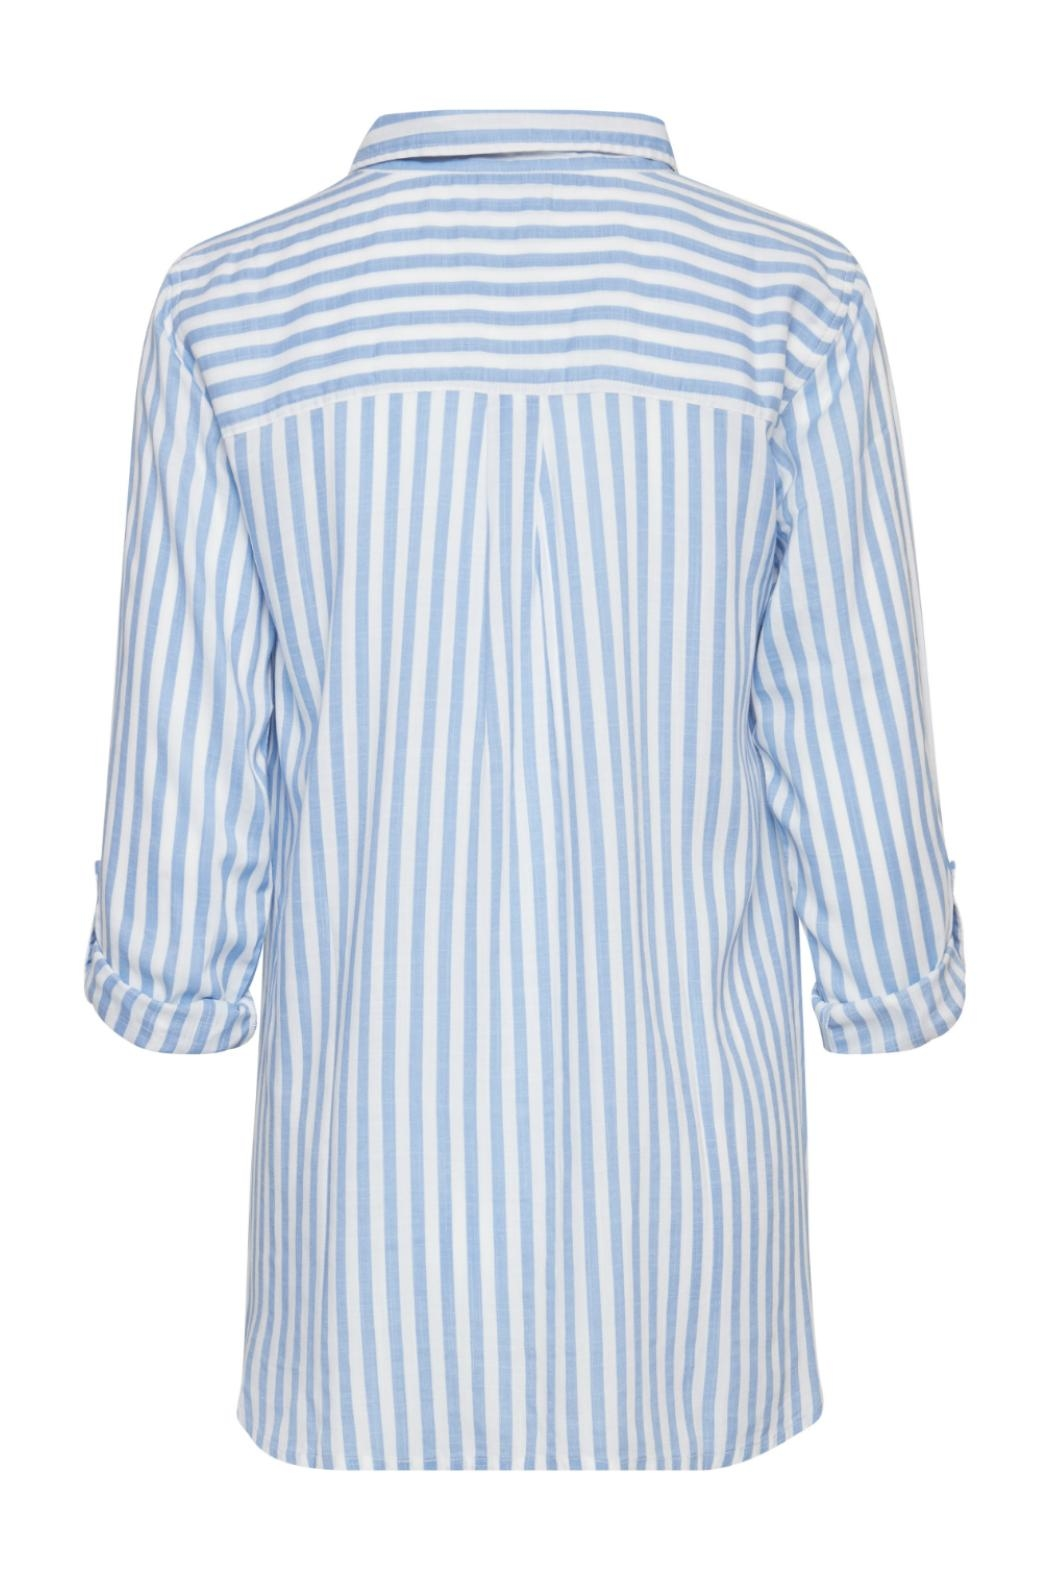 B.young Stripe Shirt - Side Cropped Image